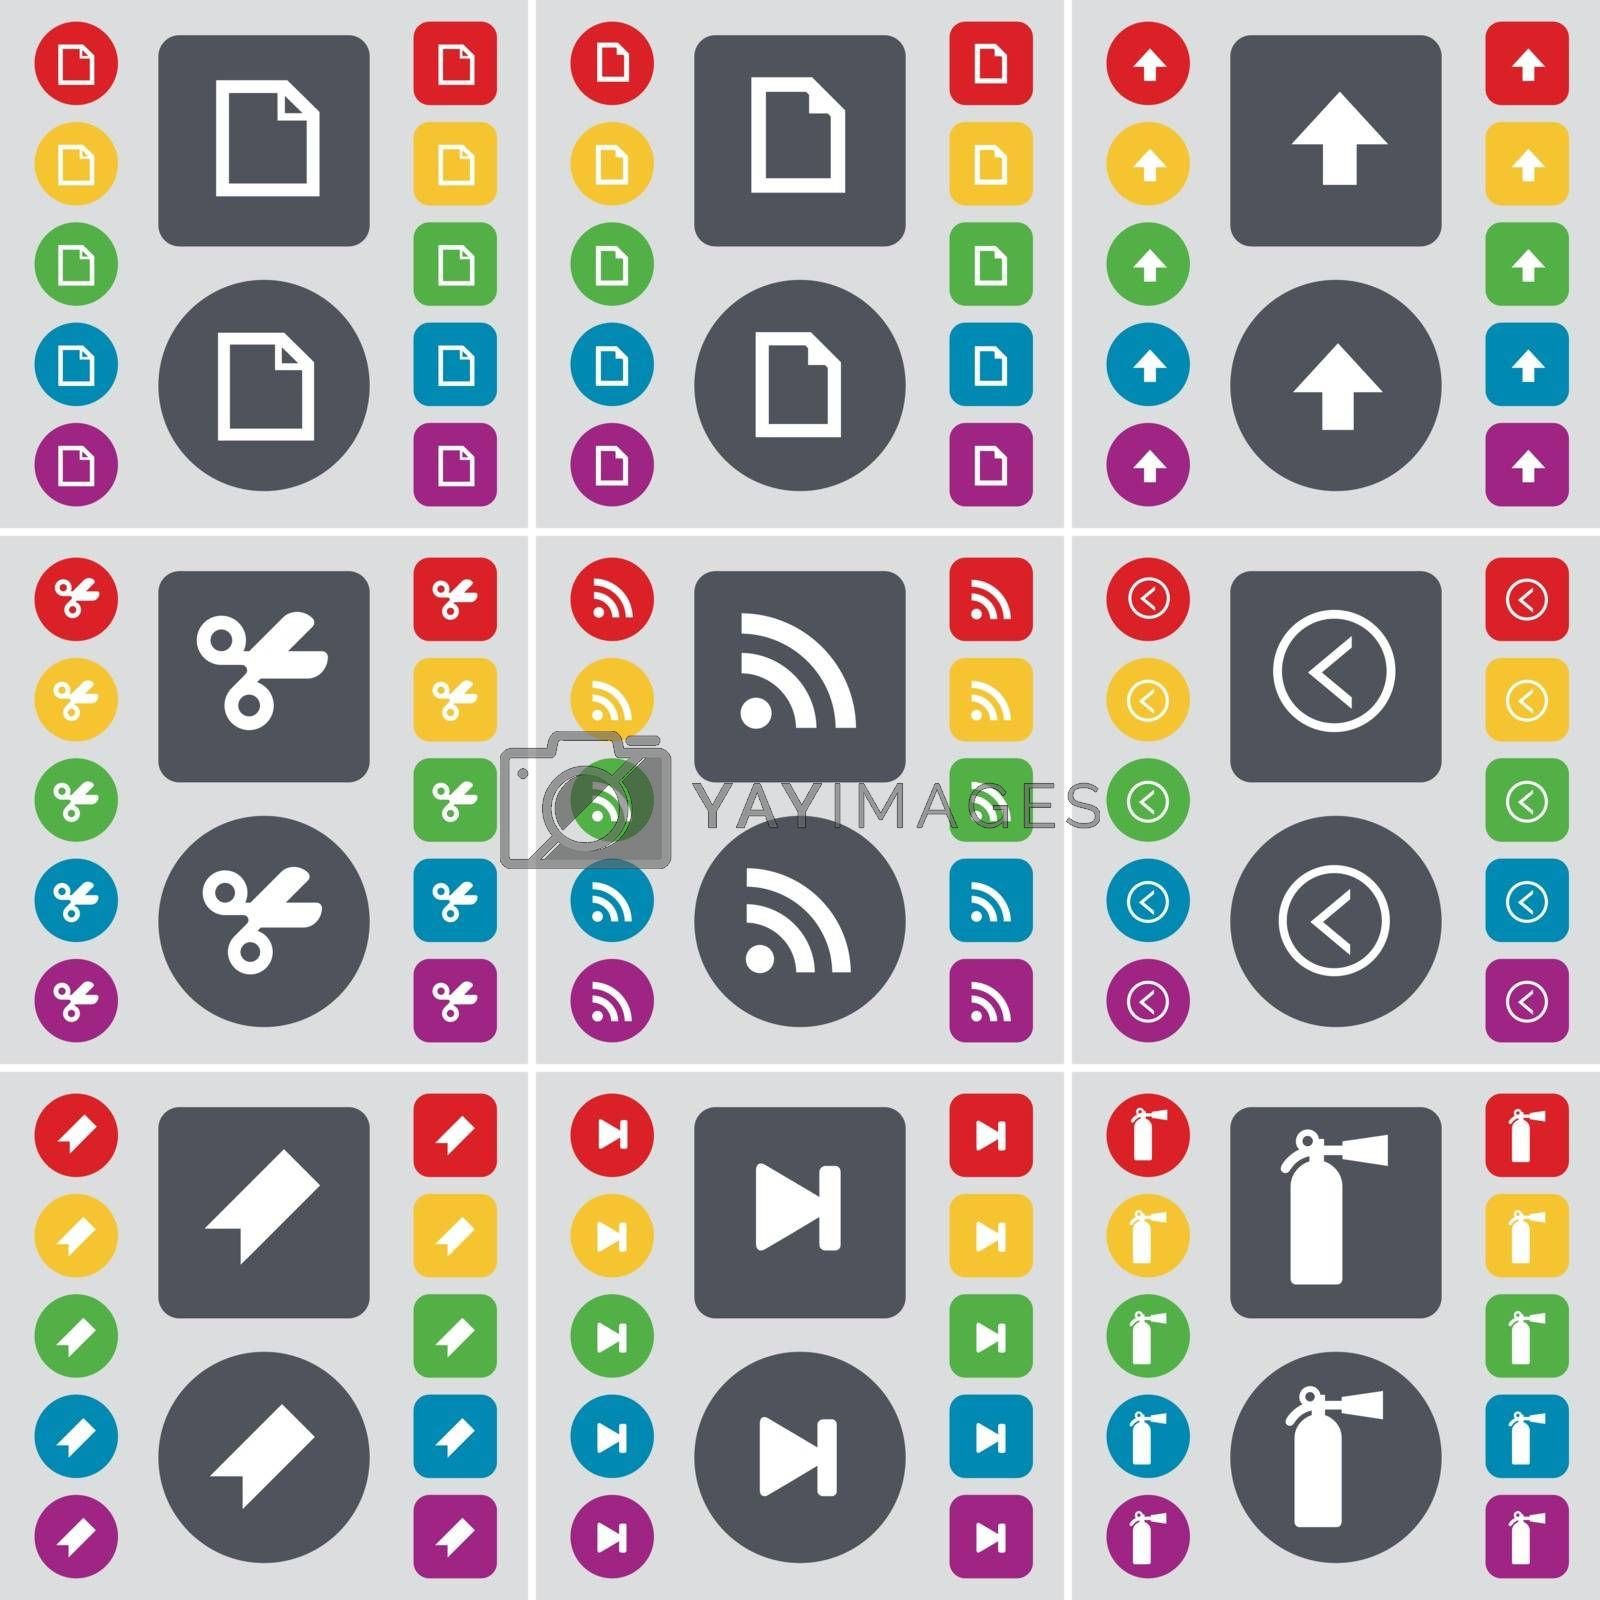 Royalty free image of File, Arrow up, Scissors, RSS, Arrow left, Marker, Media skip, Fire extinguisher icon symbol. A large set of flat, colored buttons for your design. Vector by serhii_lohvyniuk